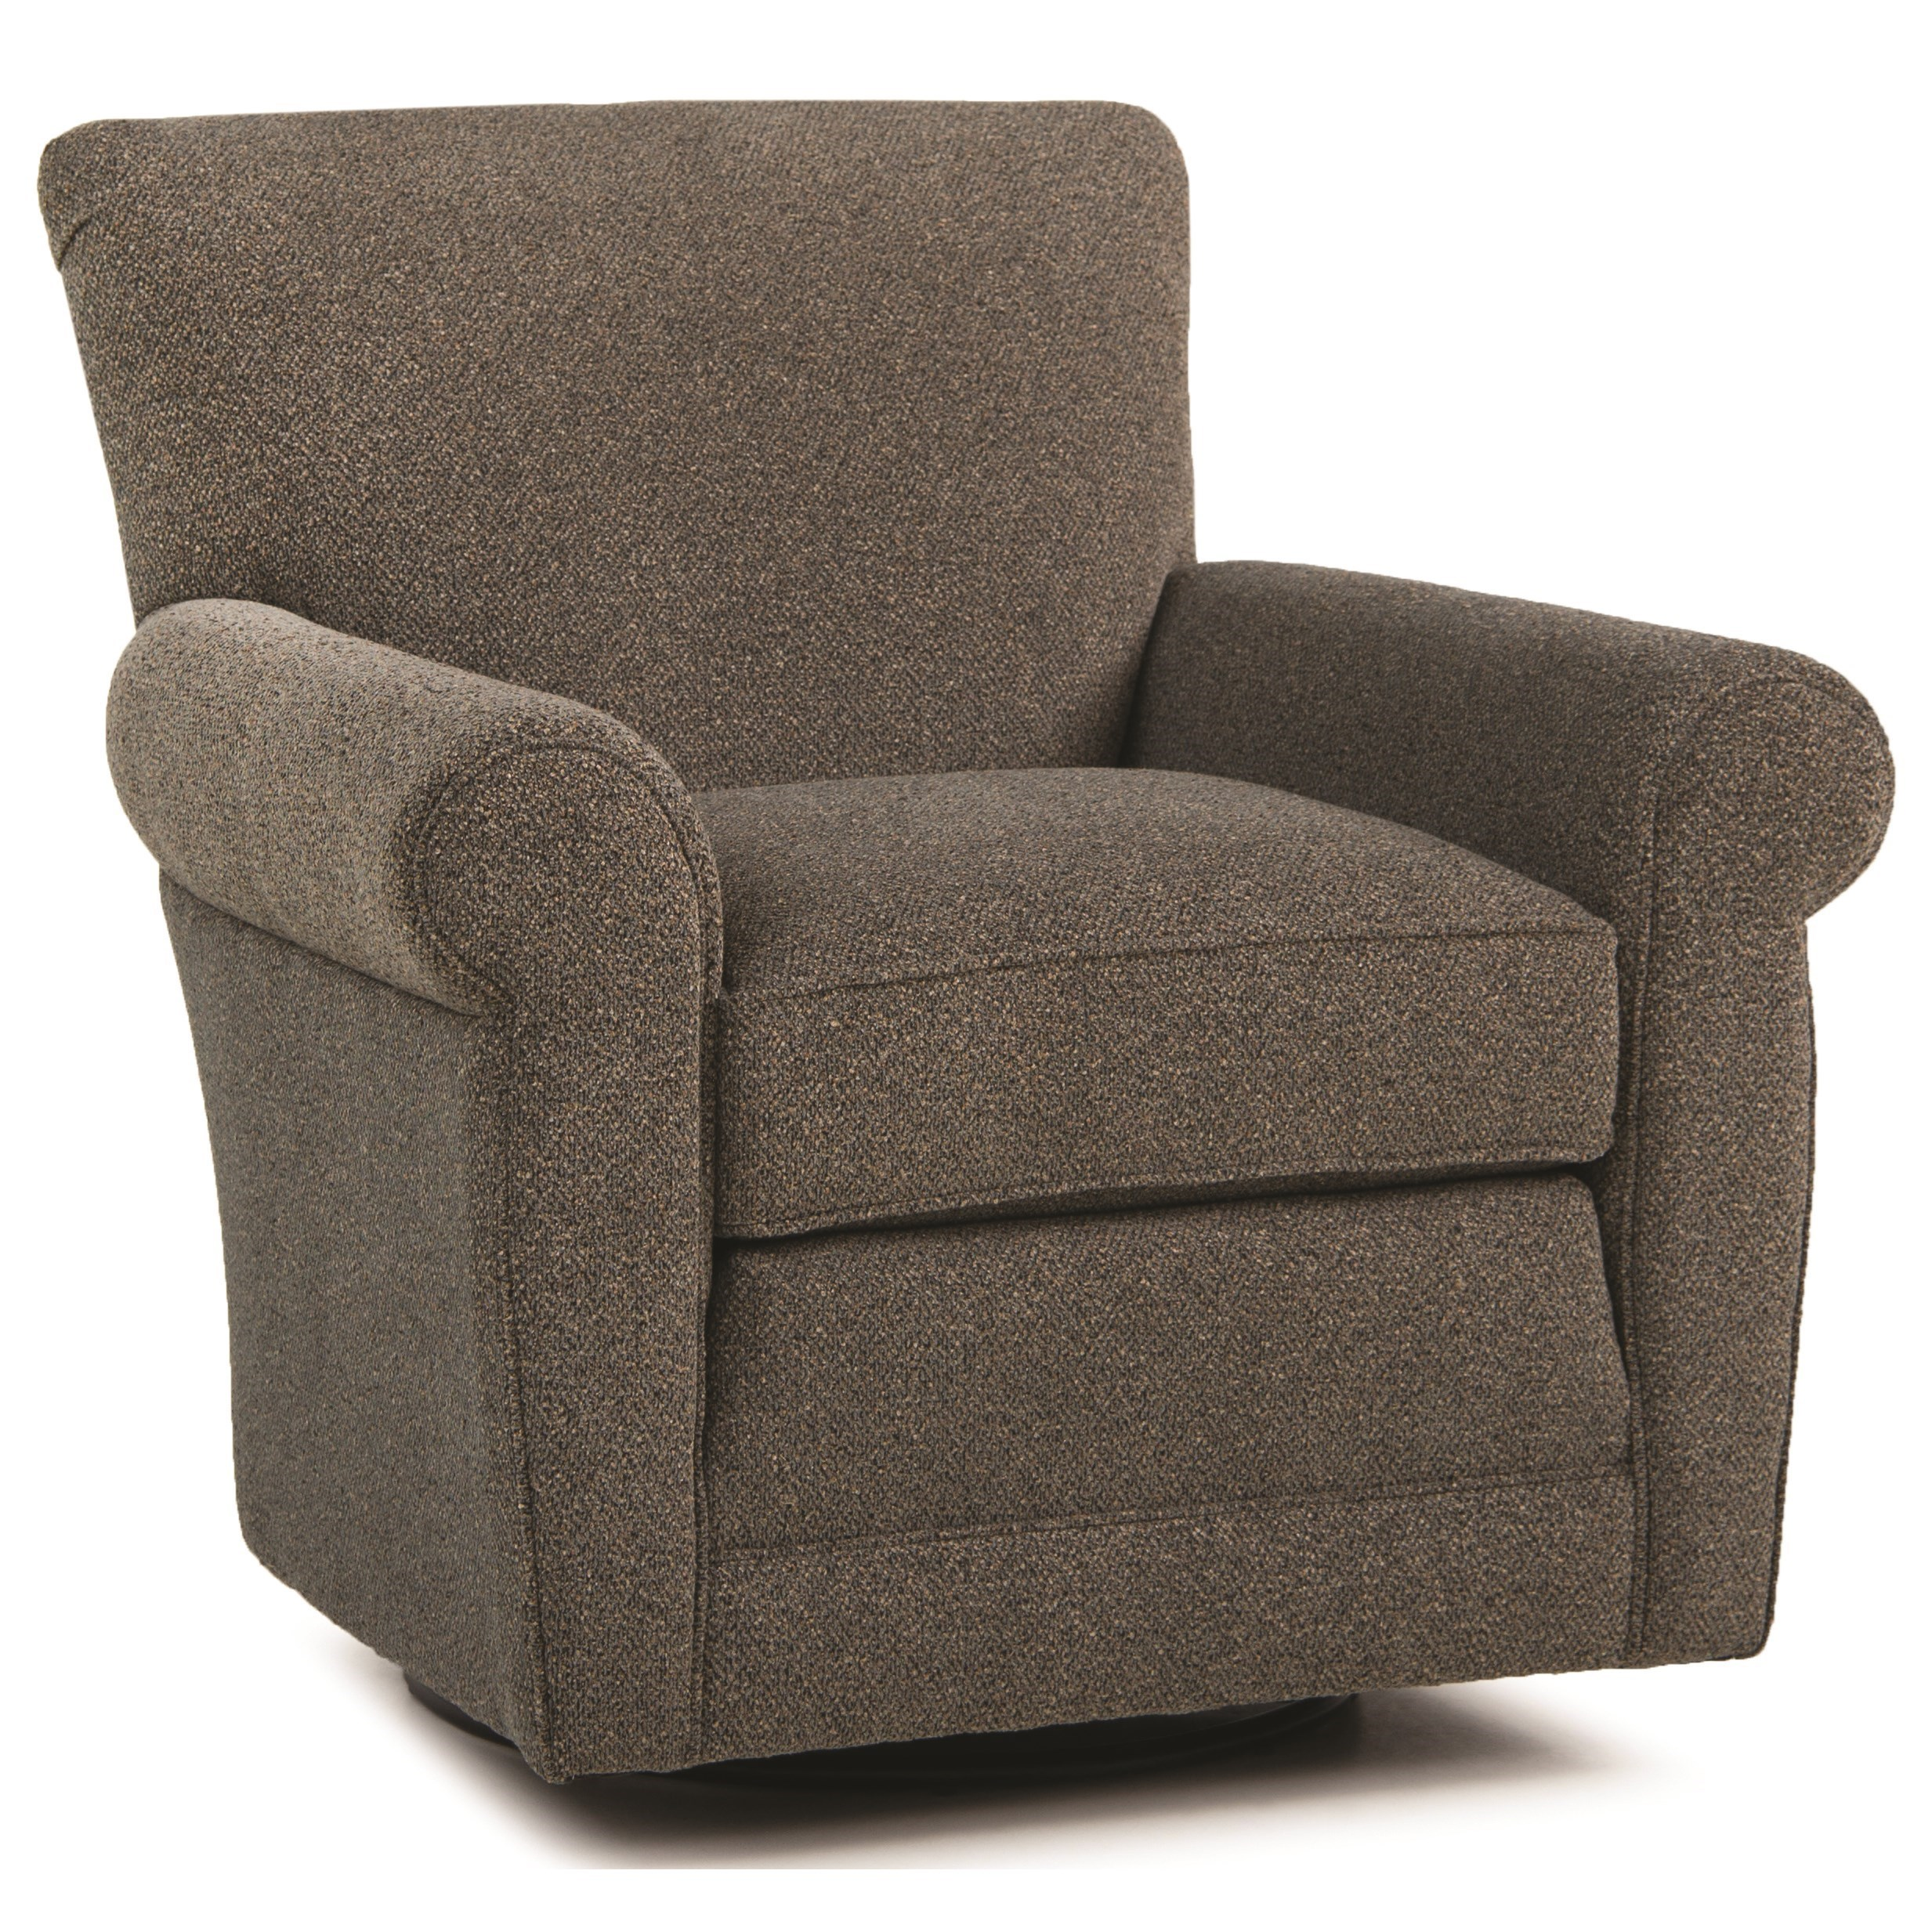 514 Swivel Chair by Smith Brothers at Mueller Furniture